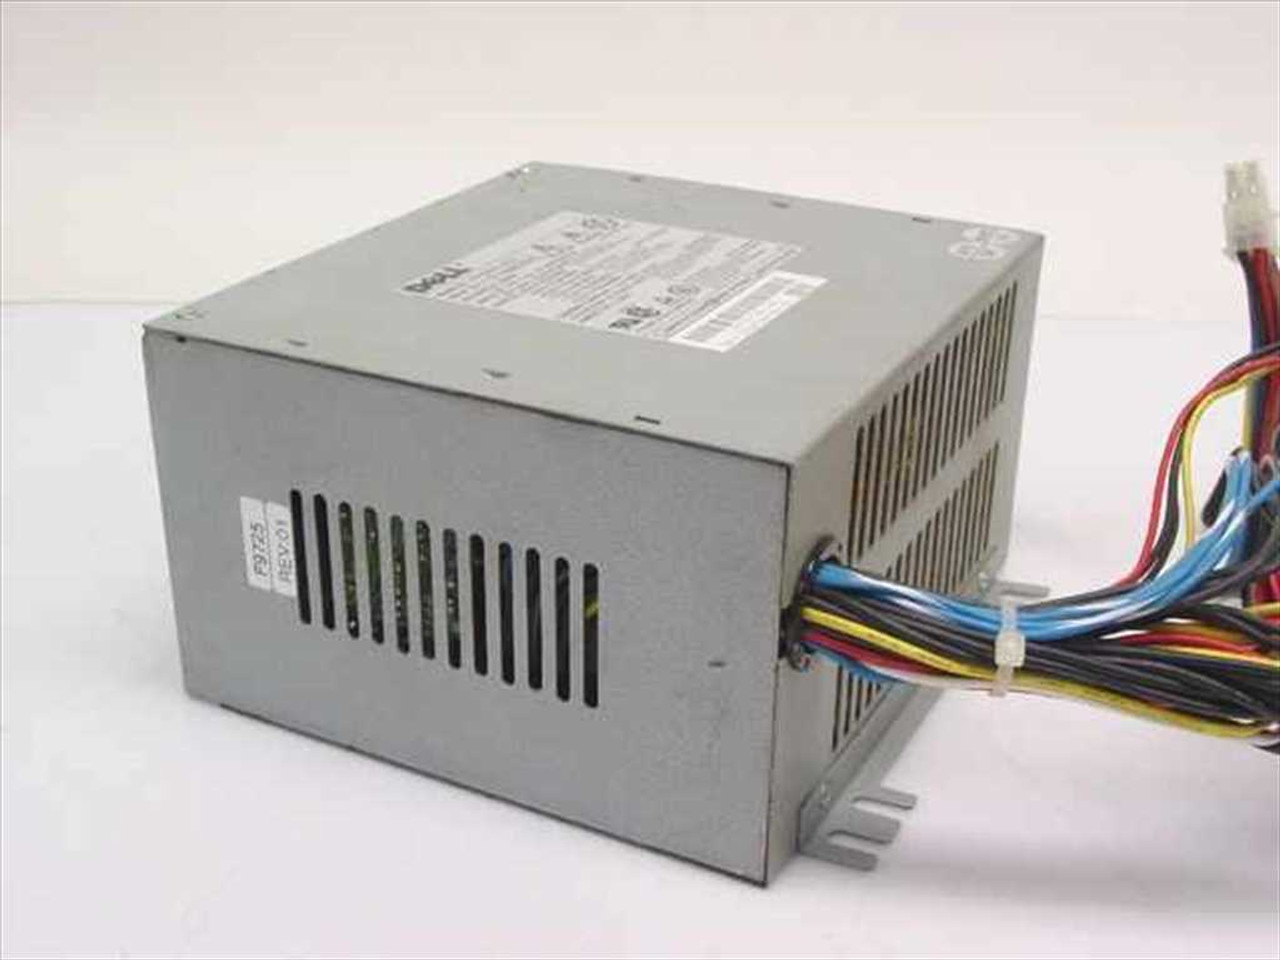 hight resolution of  subwoofer diagram dell 87346 200 w power supply ps 5201 1d1a recycledgoods com